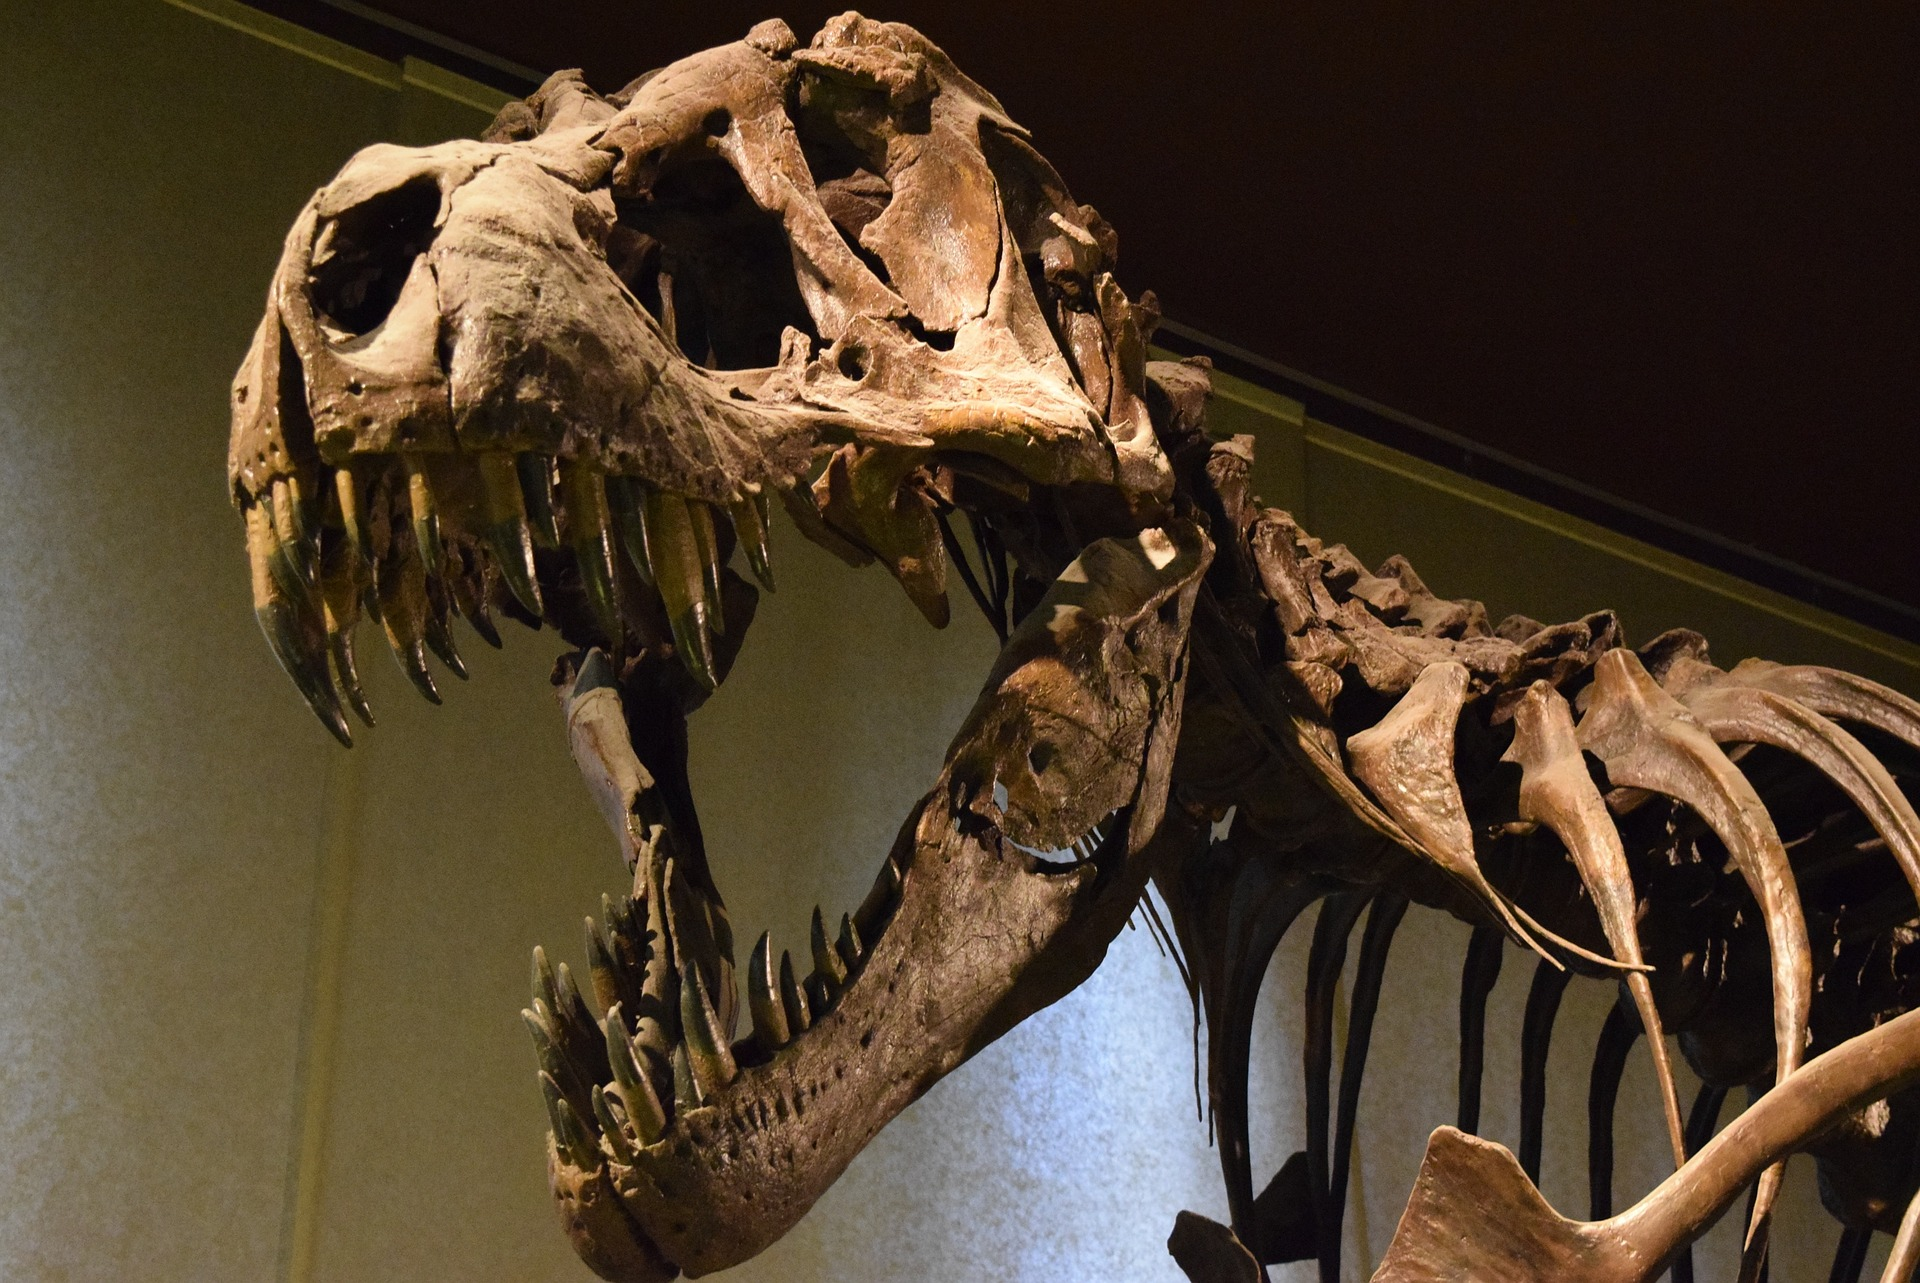 a history of the tyrannosaurus rex fossil named sue Tyrannosaurus sue has 345 ratings and 35 reviews  tyrannosaurus fossil ever found  it also told of the dramatic legal battle over sue, the t-rex fossil.